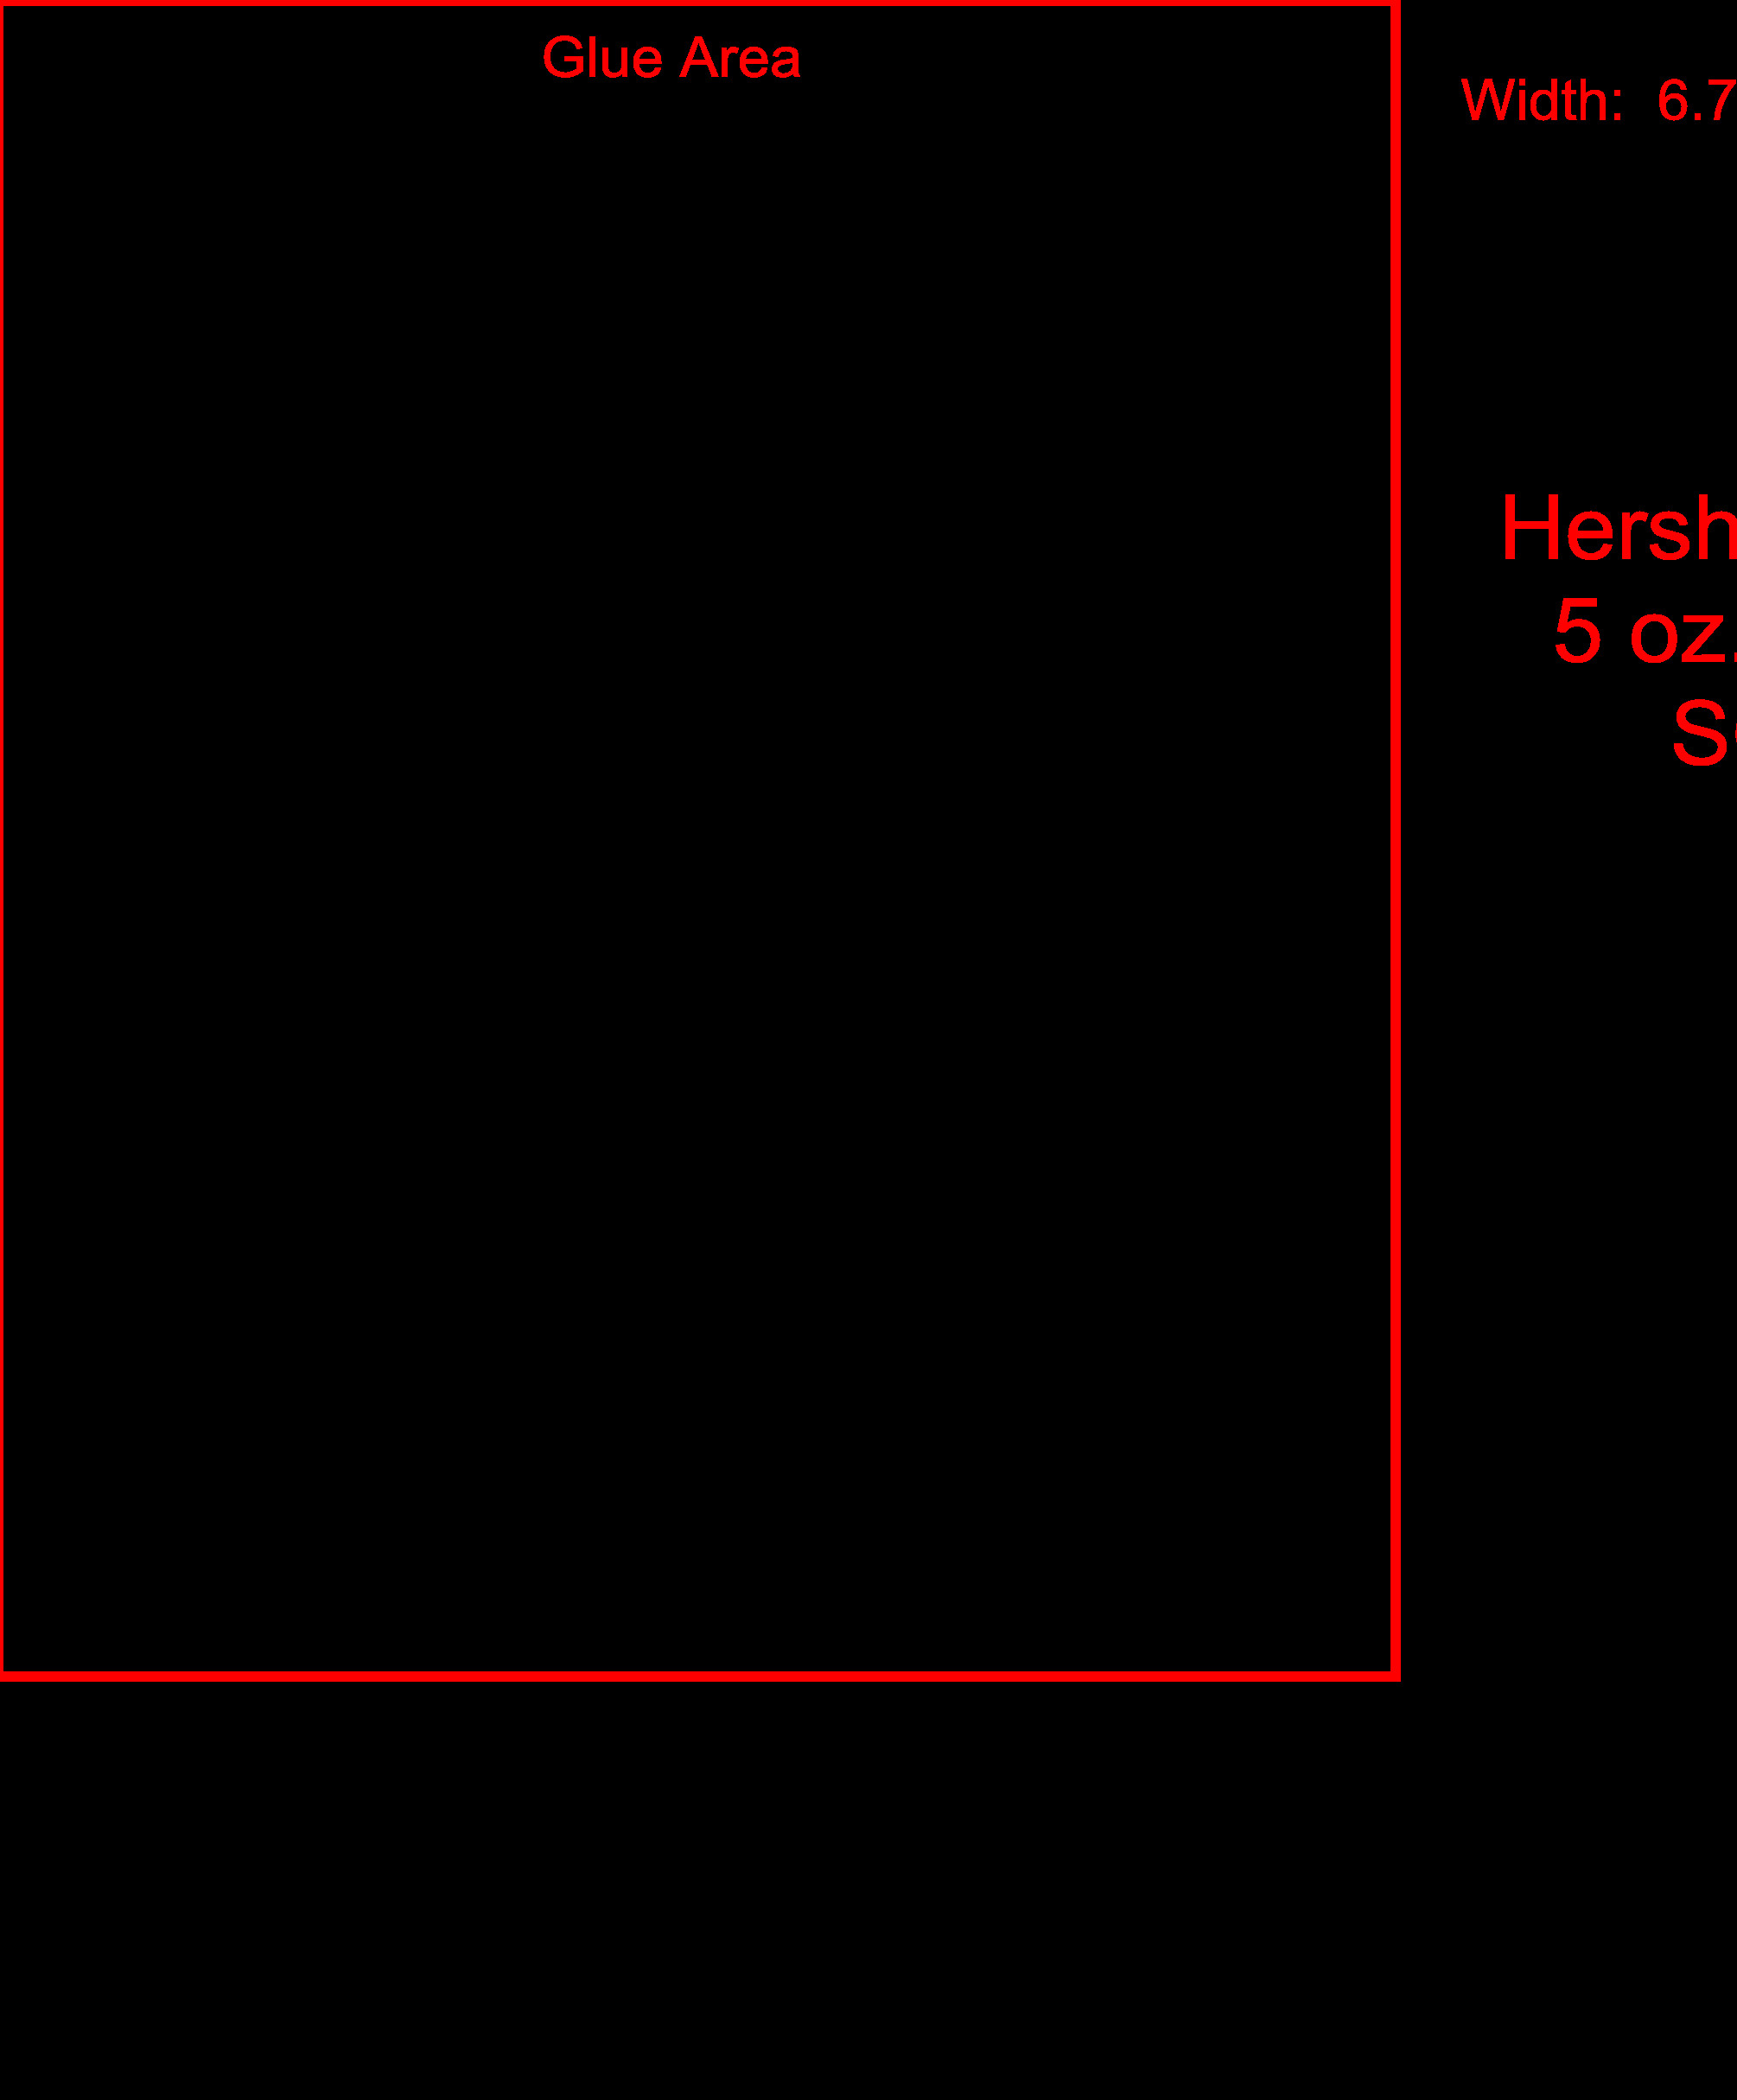 Hershey Candy Bar Wrapper Template Size